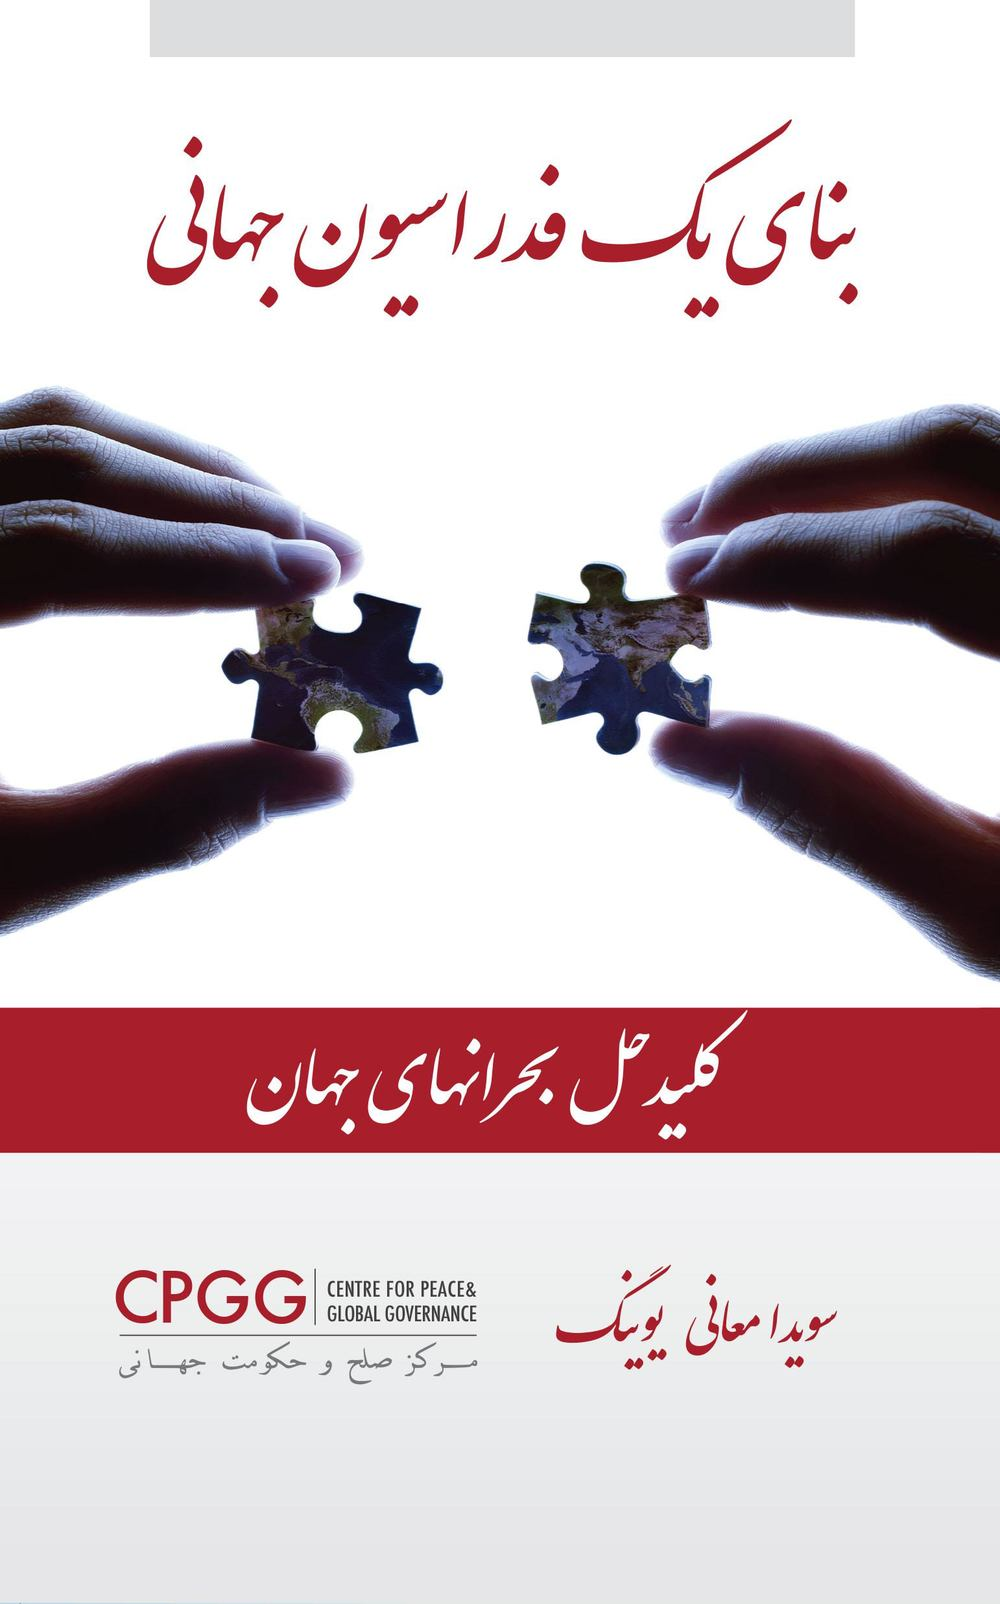 """بنای یک فدراسیون جهانی:  کلید حل بحرانهای جهان""    Download PDF  in Farsi  Also available in digital and hard copy at  www.amazon.com   and  bn.com"